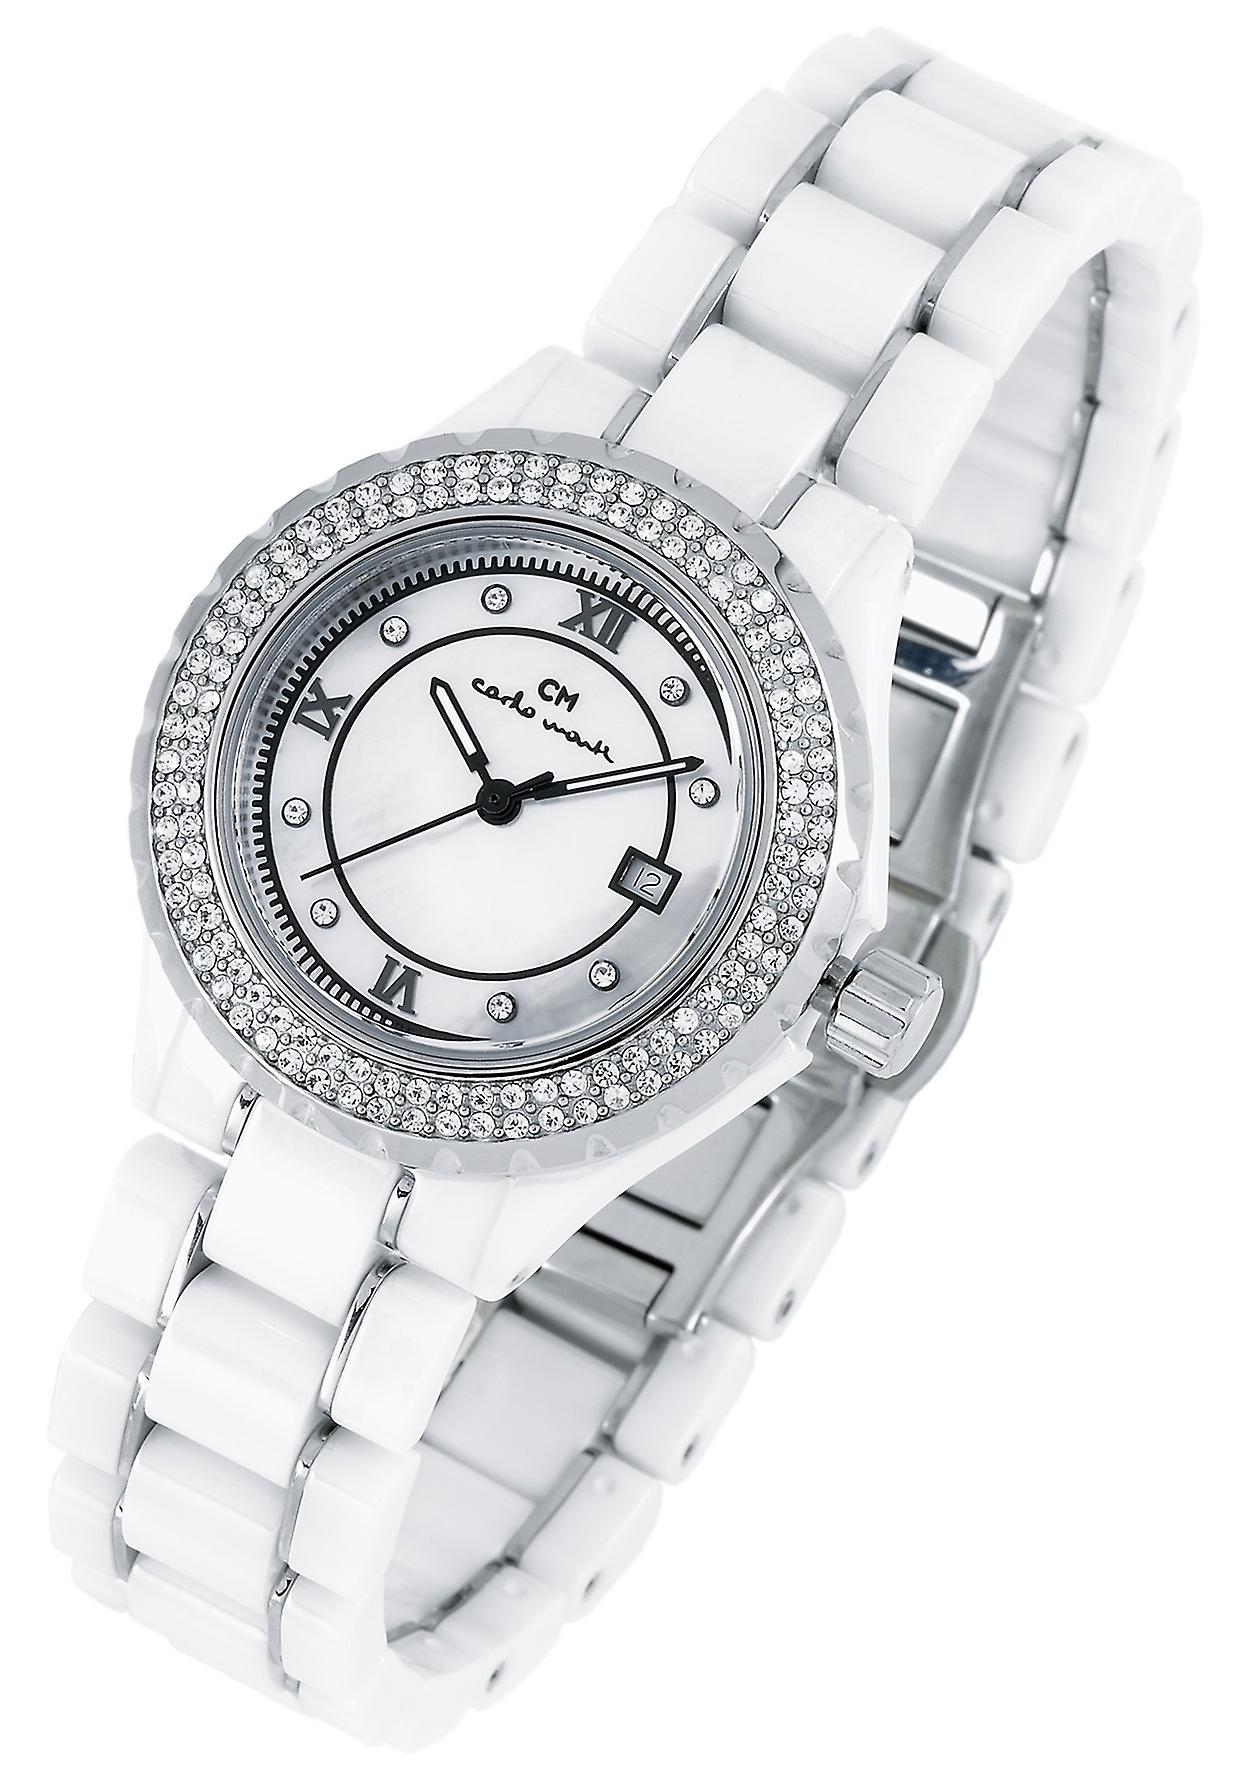 Carlo Monti Ladies Quartz Watch Piacenza CM201-186A